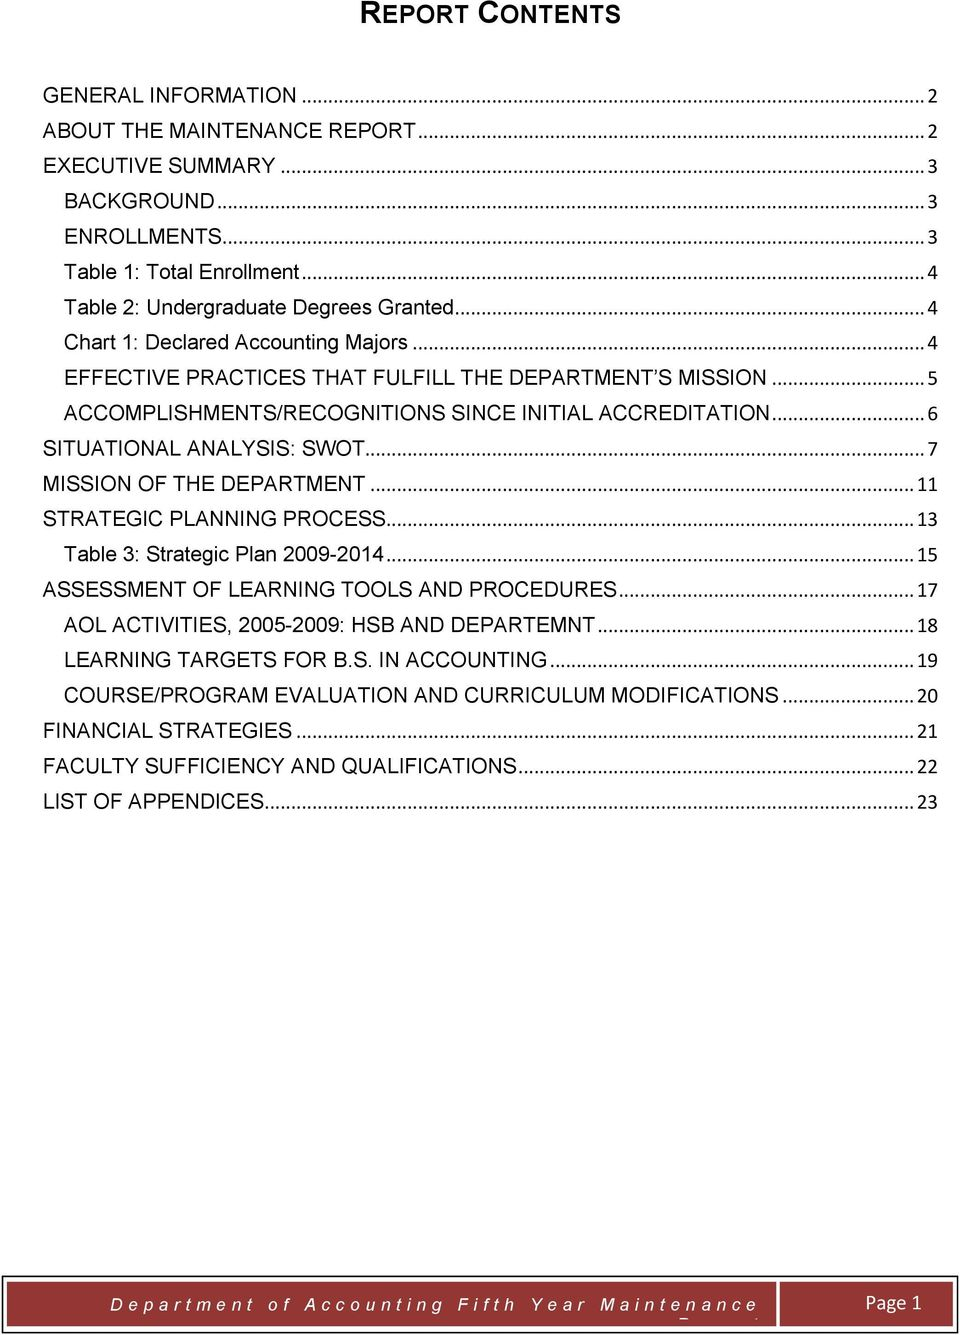 .. 7 MISSION OF THE DEPARTMENT... 11 STRATEGIC PLANNING PROCESS... 13 Table 3: Strategic Plan 2009-2014... 15 ASSESSMENT OF LEARNING TOOLS AND PROCEDURES.